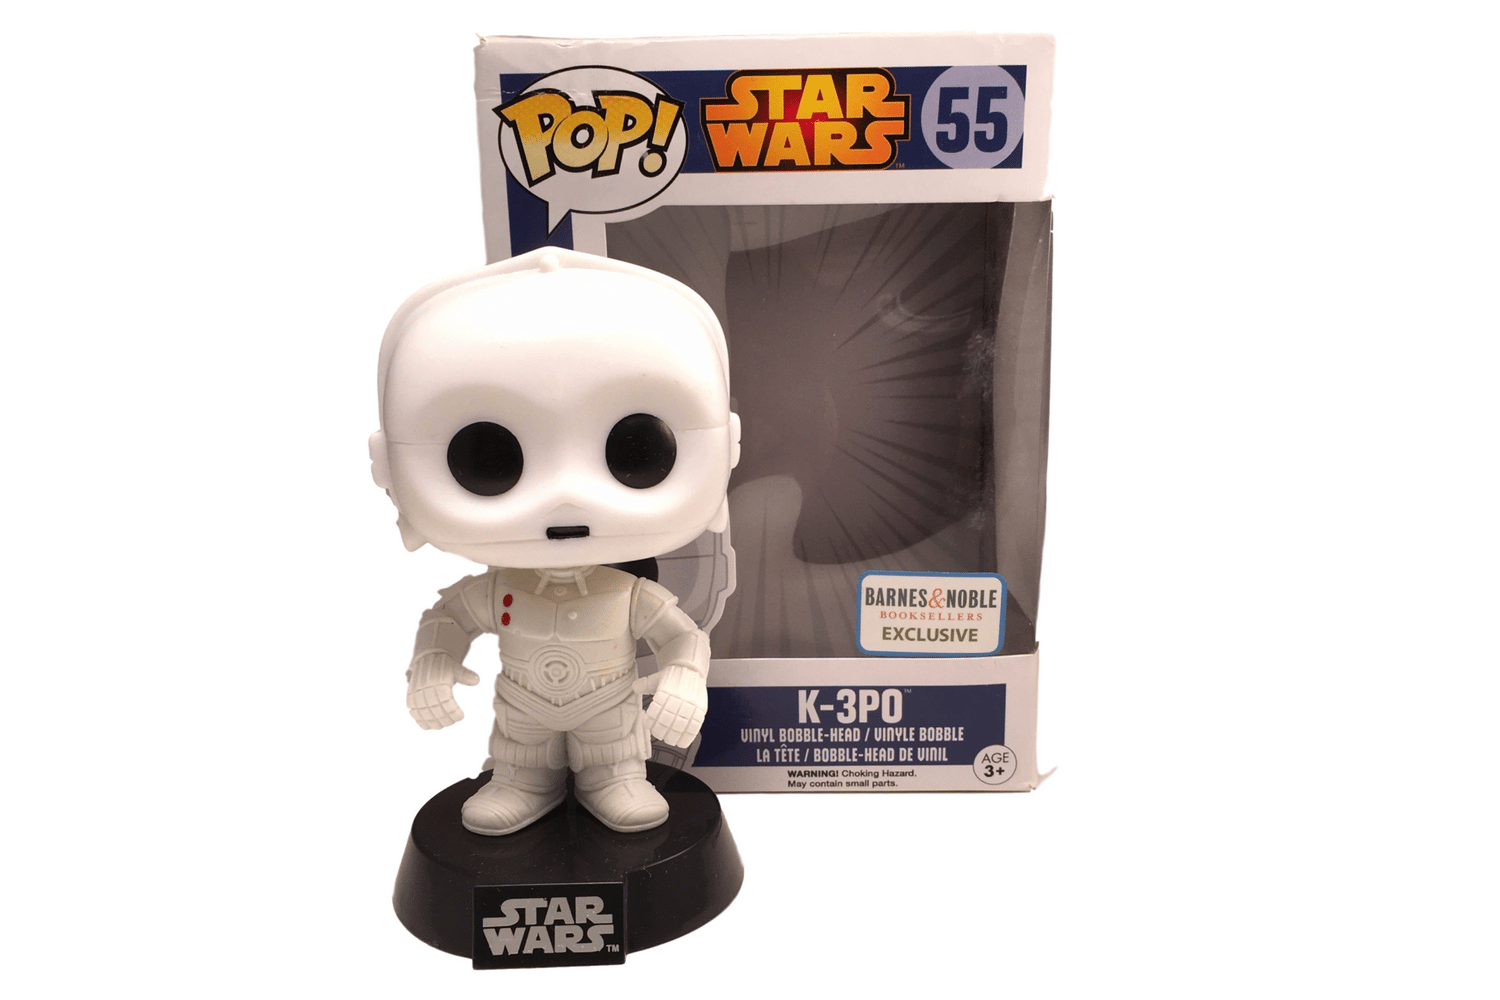 Funko Pop! Star Wars Guide #55 K-3PO